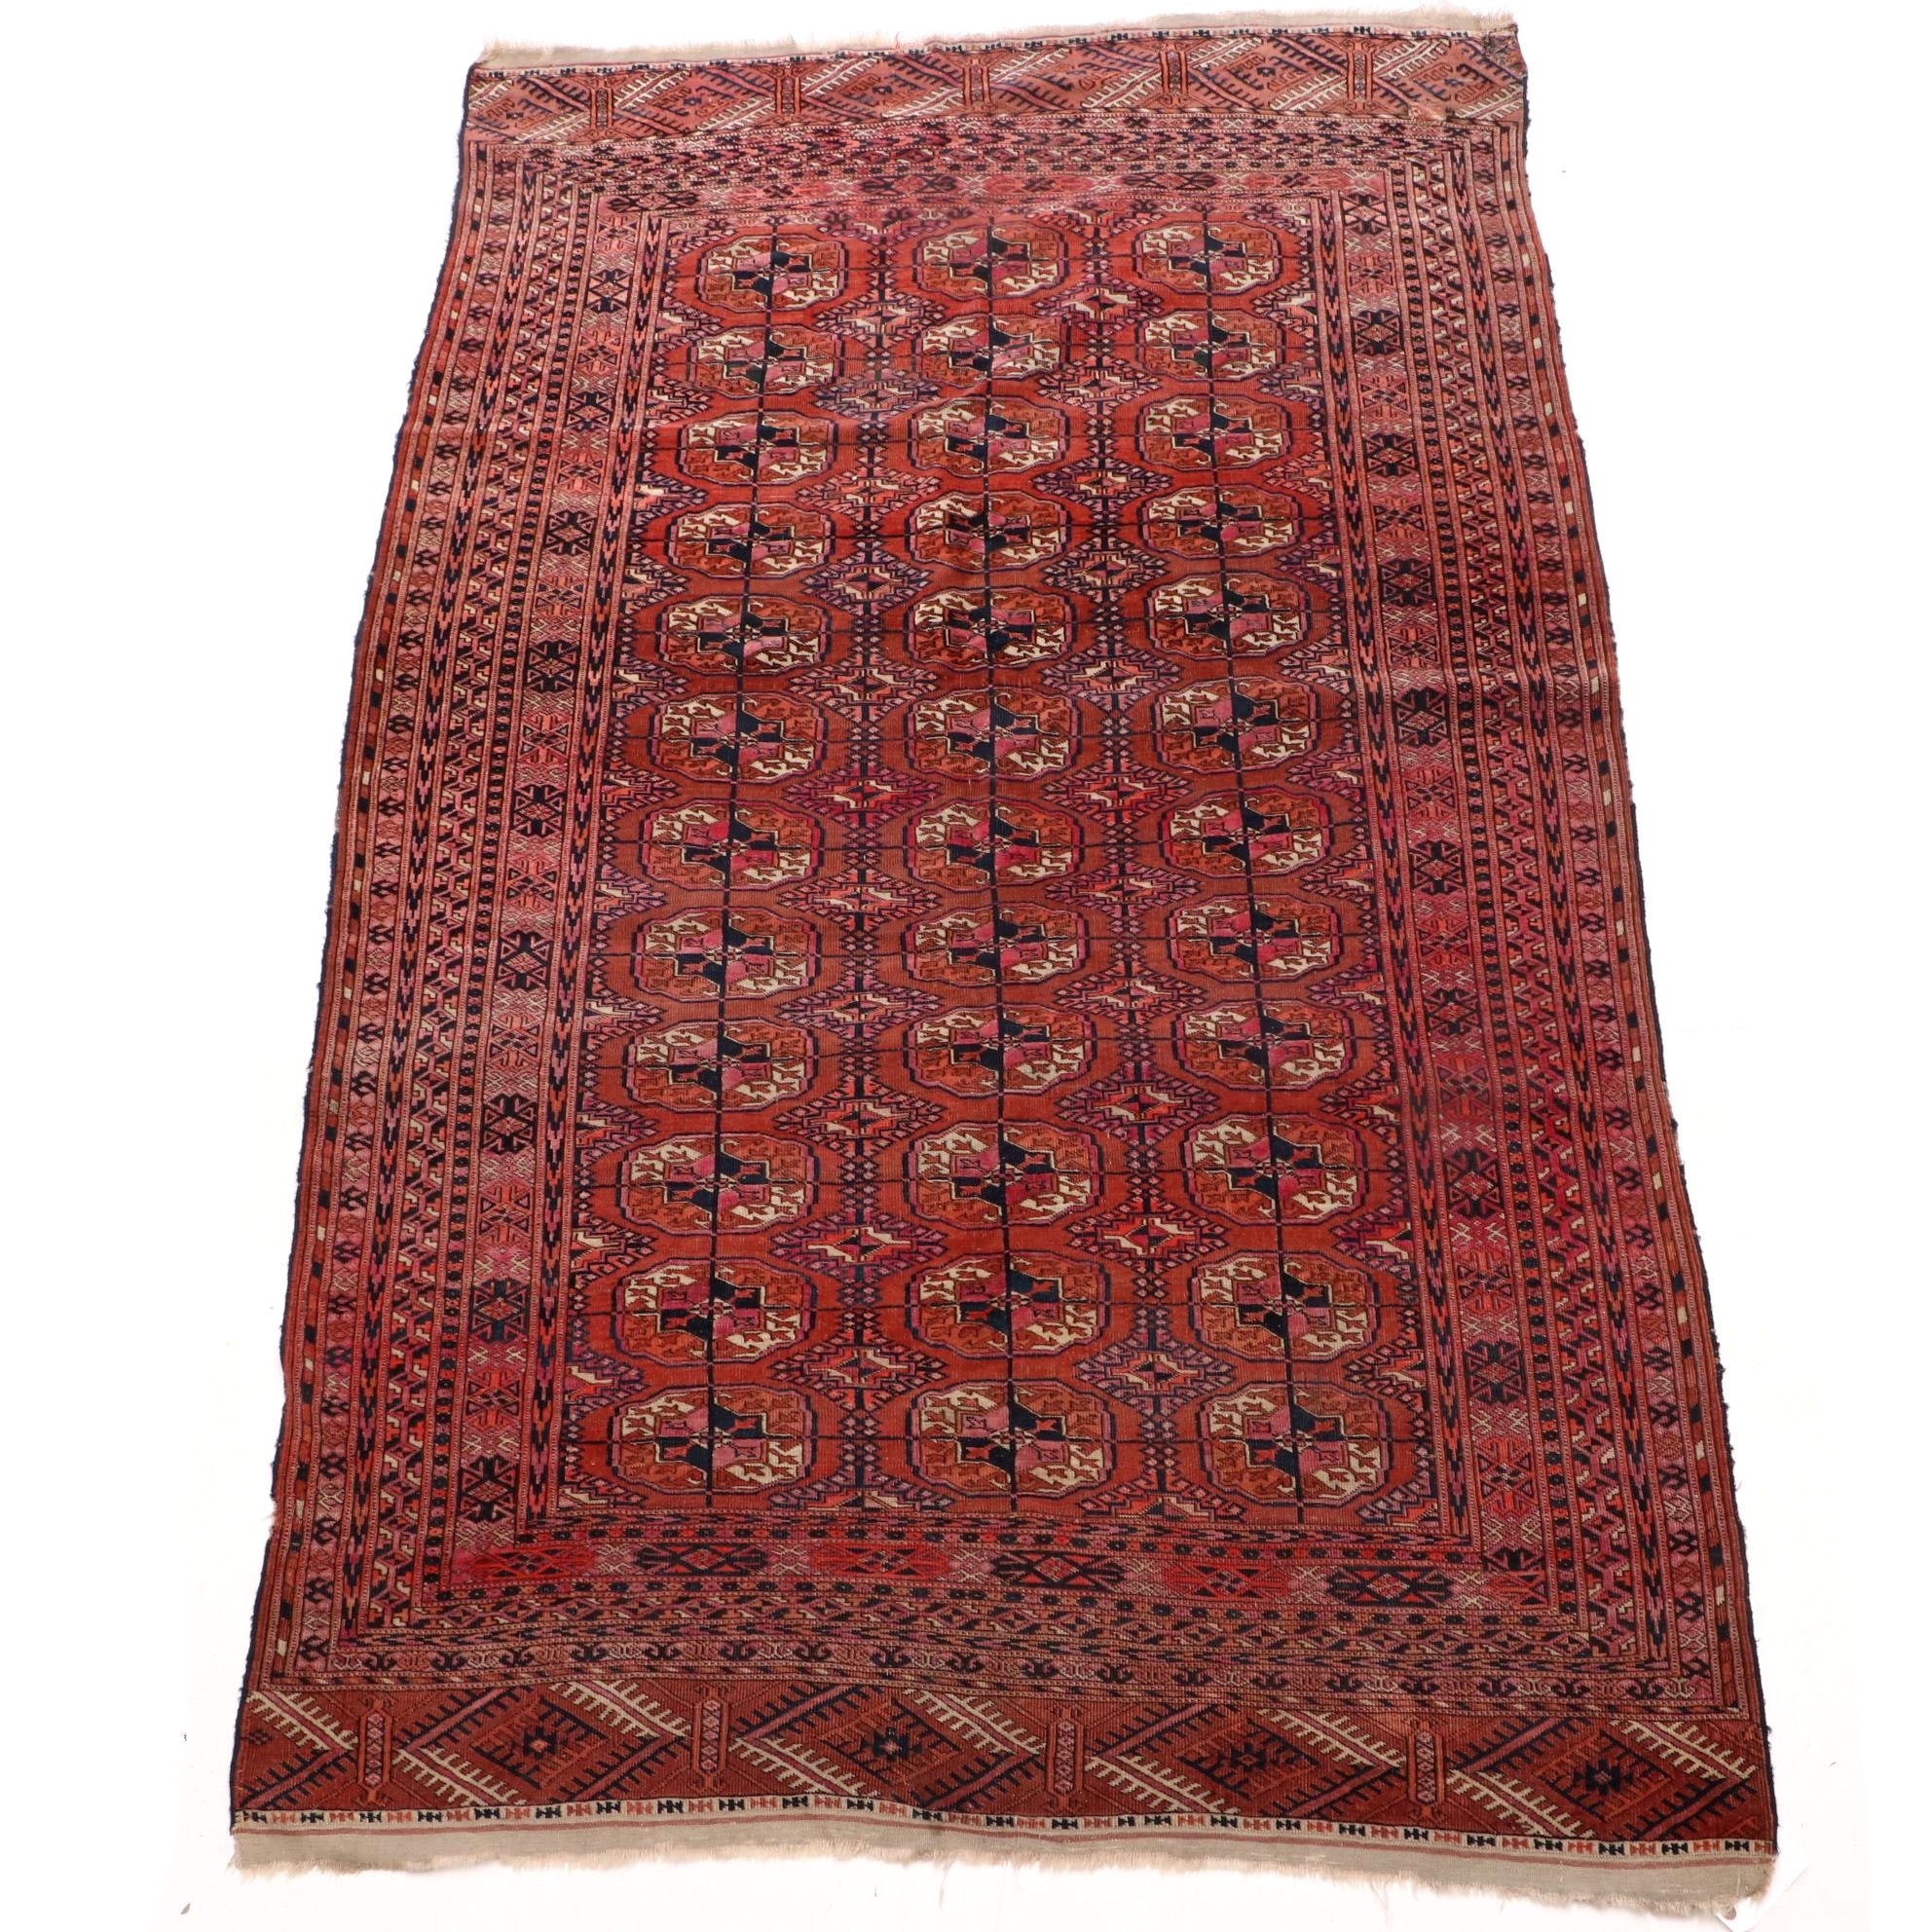 Semi-Antique Hand-Knotted Turkmen Wool Area Rug